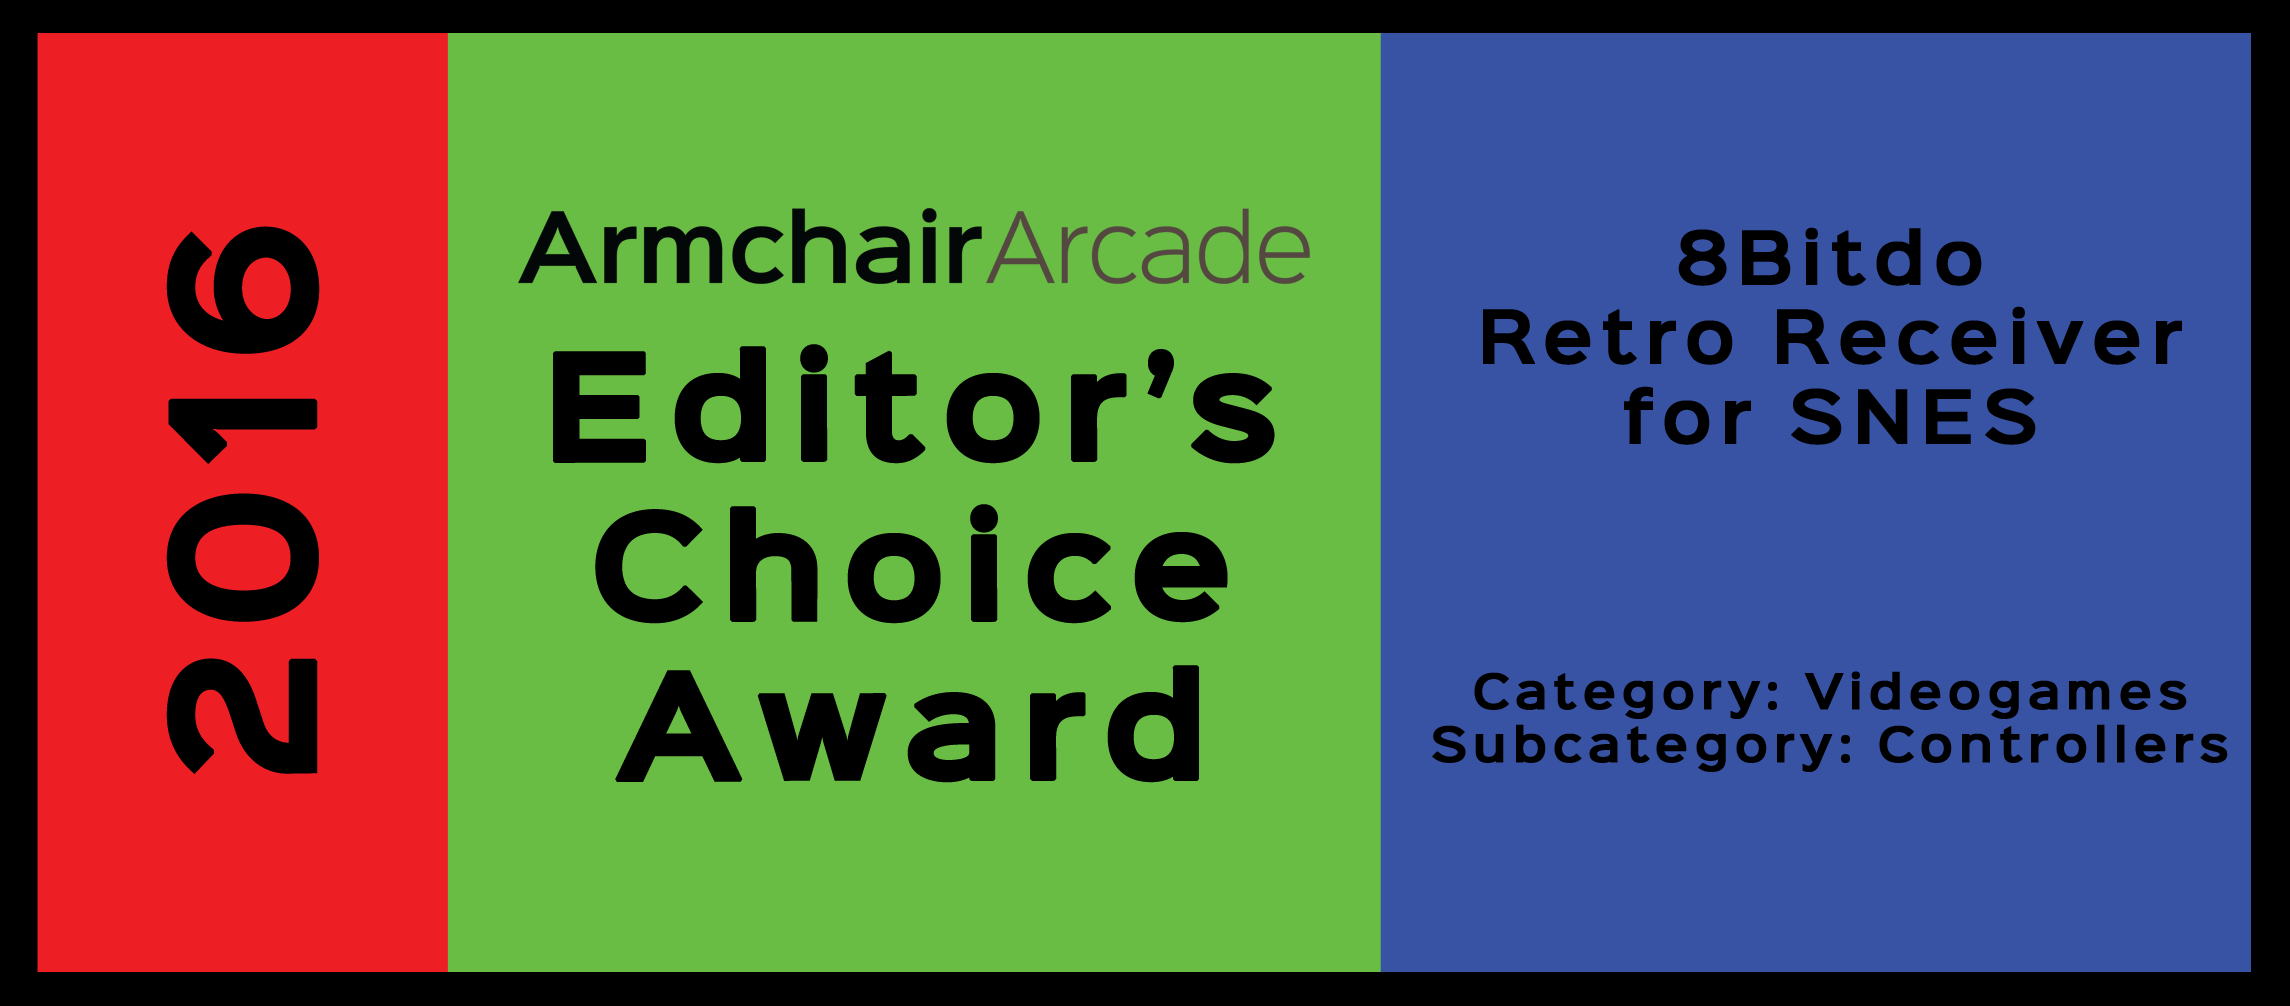 Armchair Arcade Editor's Choice Award 2016: 8bitdo Retro Receiver for SNES